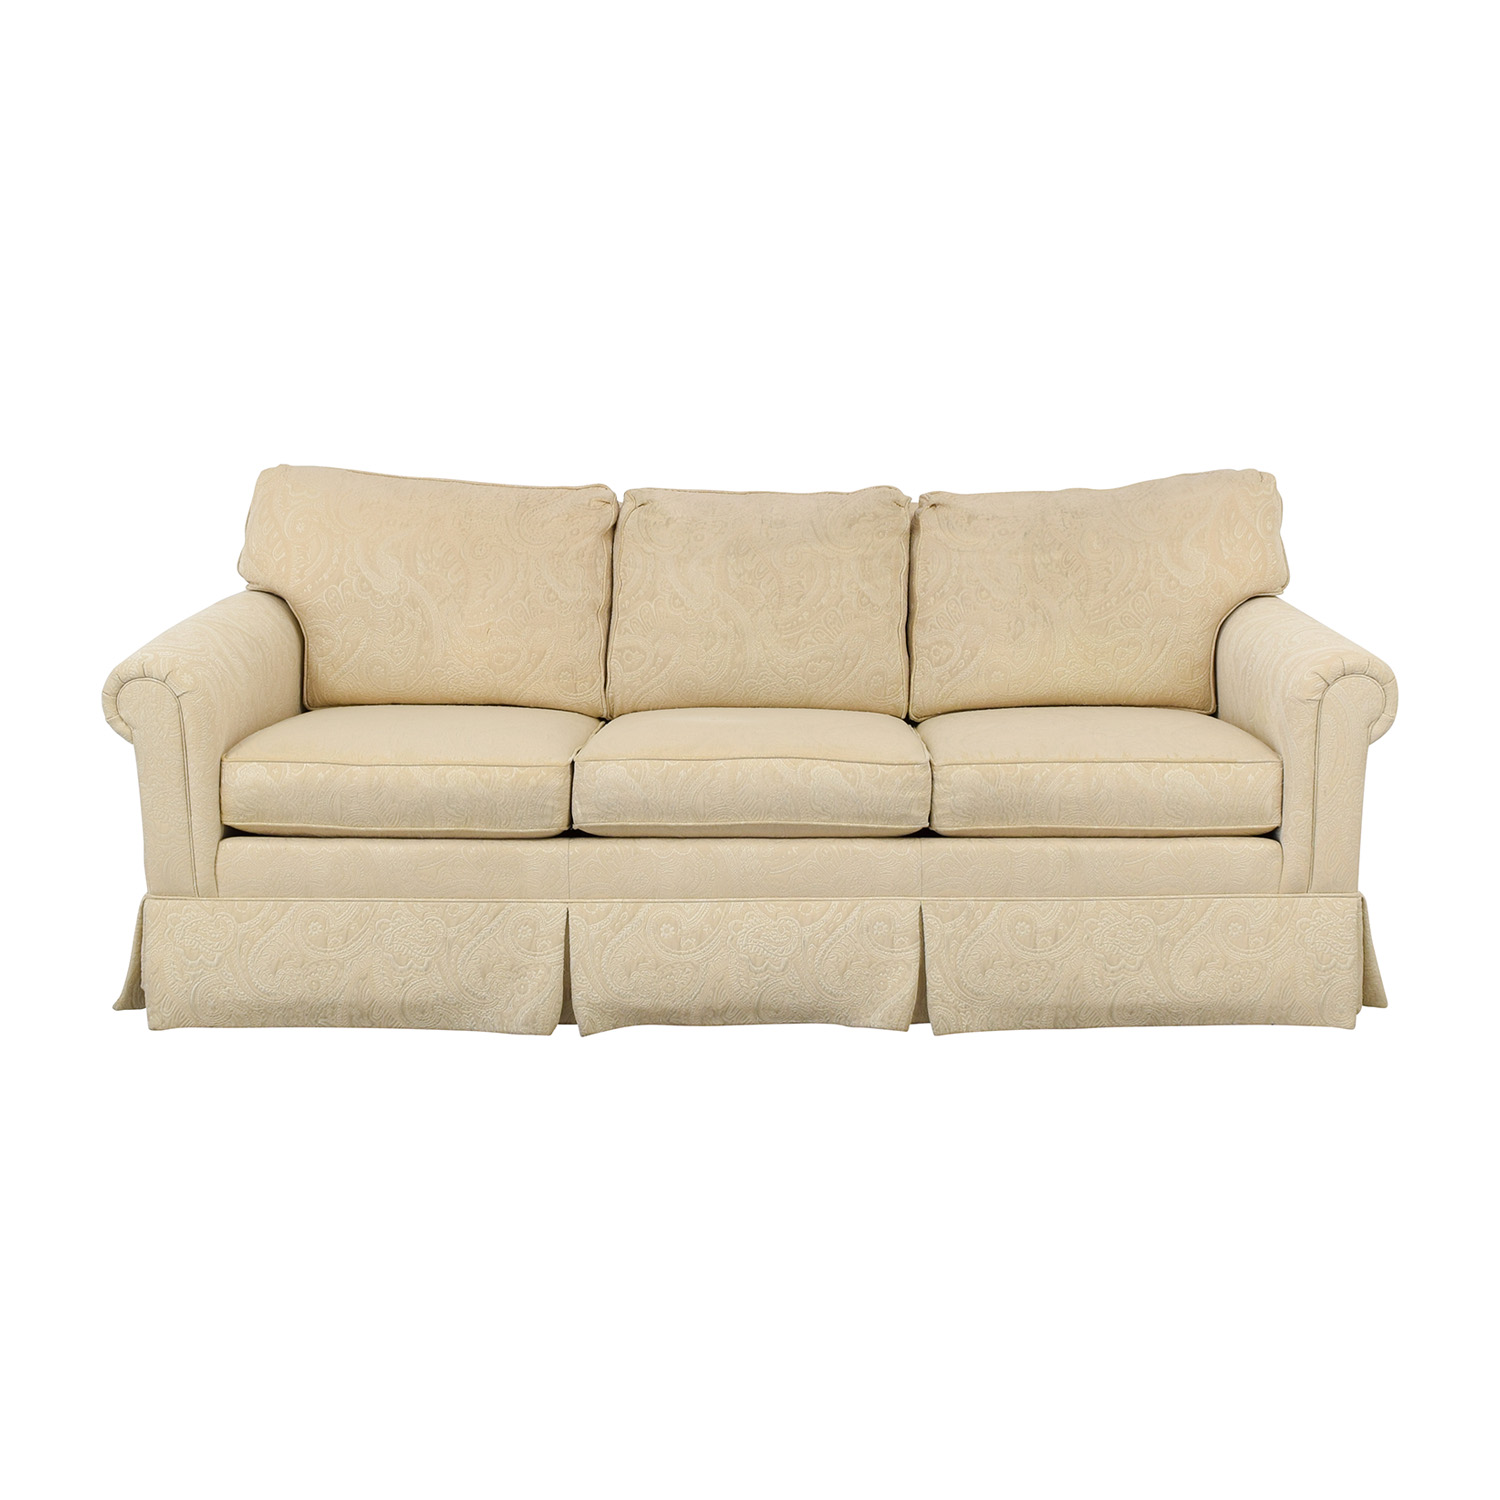 Ethan Allen Ethan Allen Slipcovered Sofa on sale